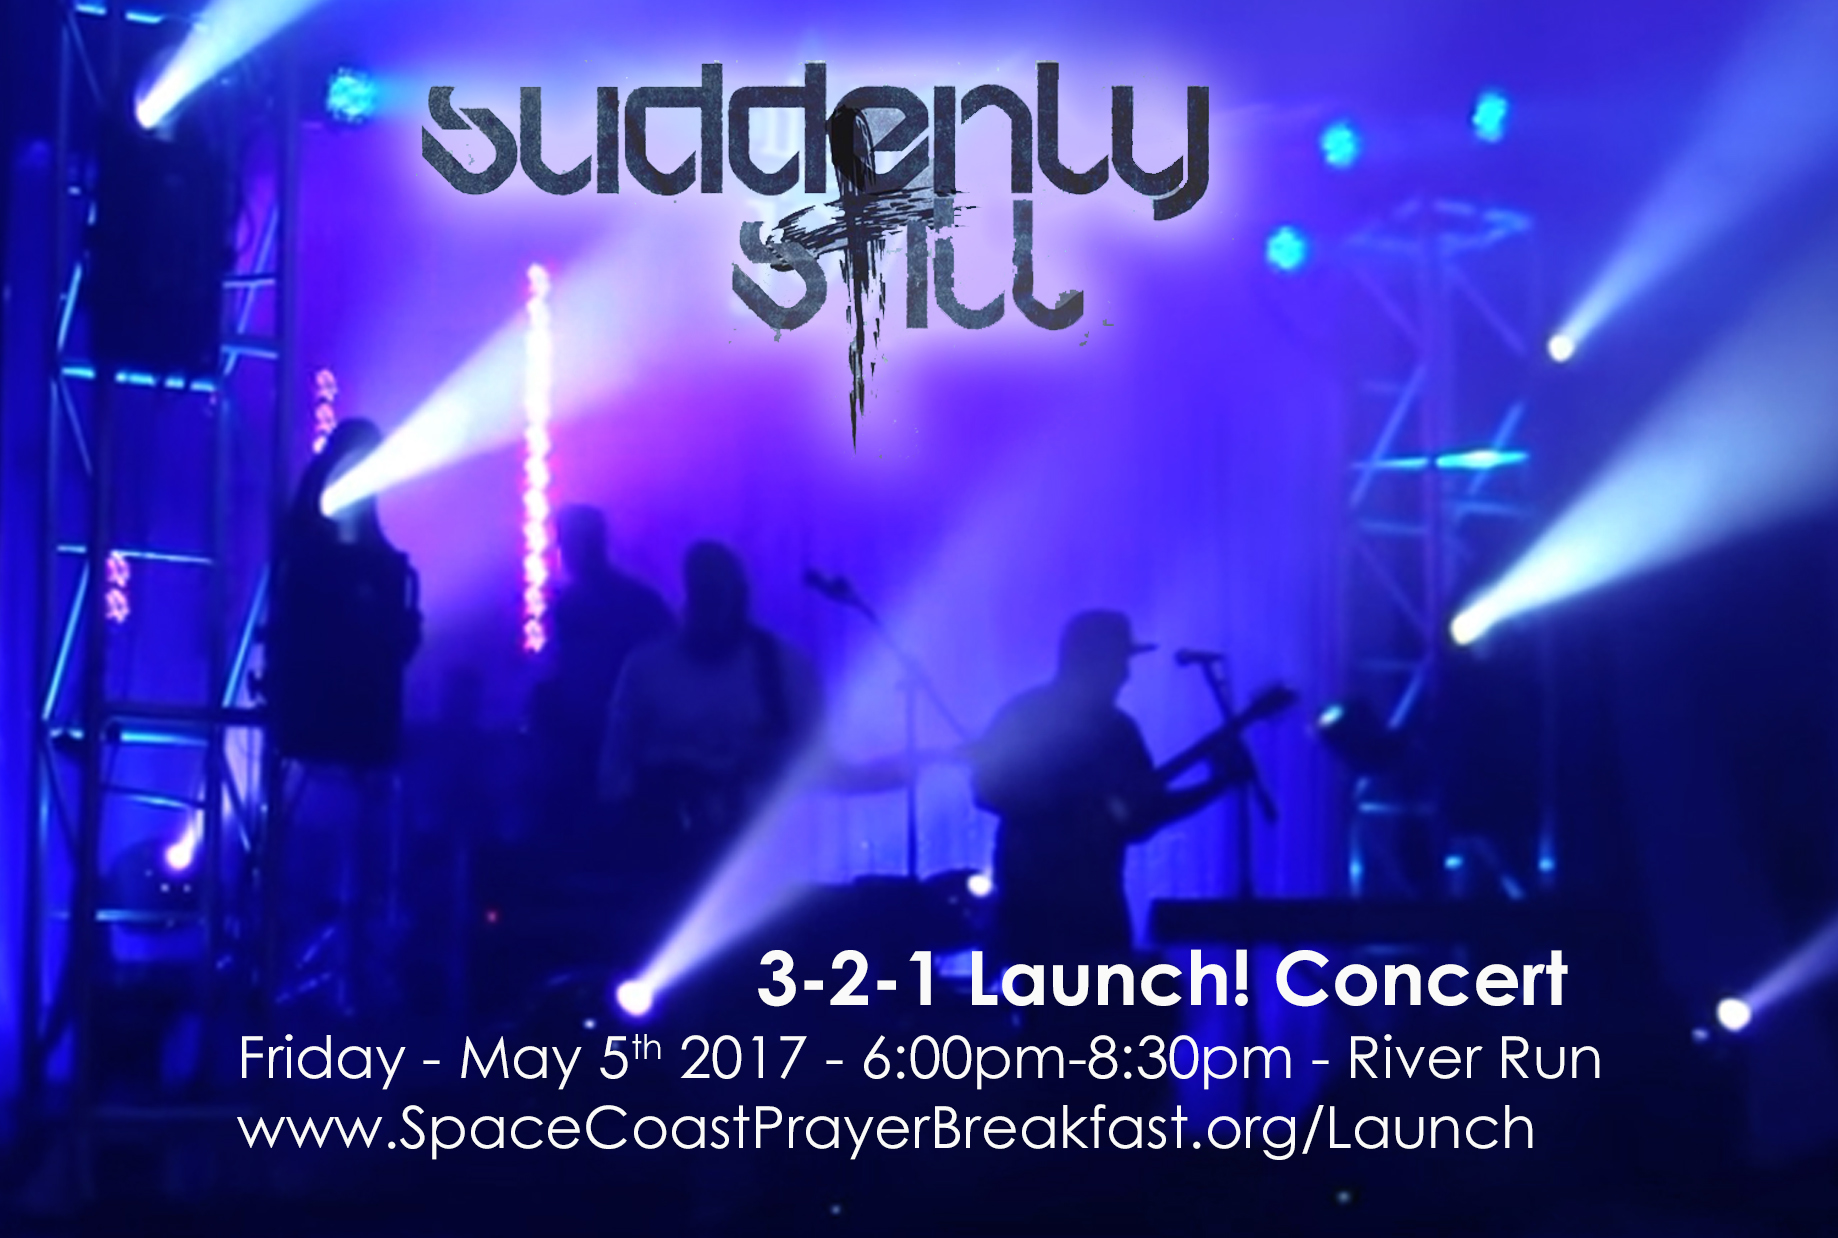 Suddenly Still - 3-2-1 Launch! Concert